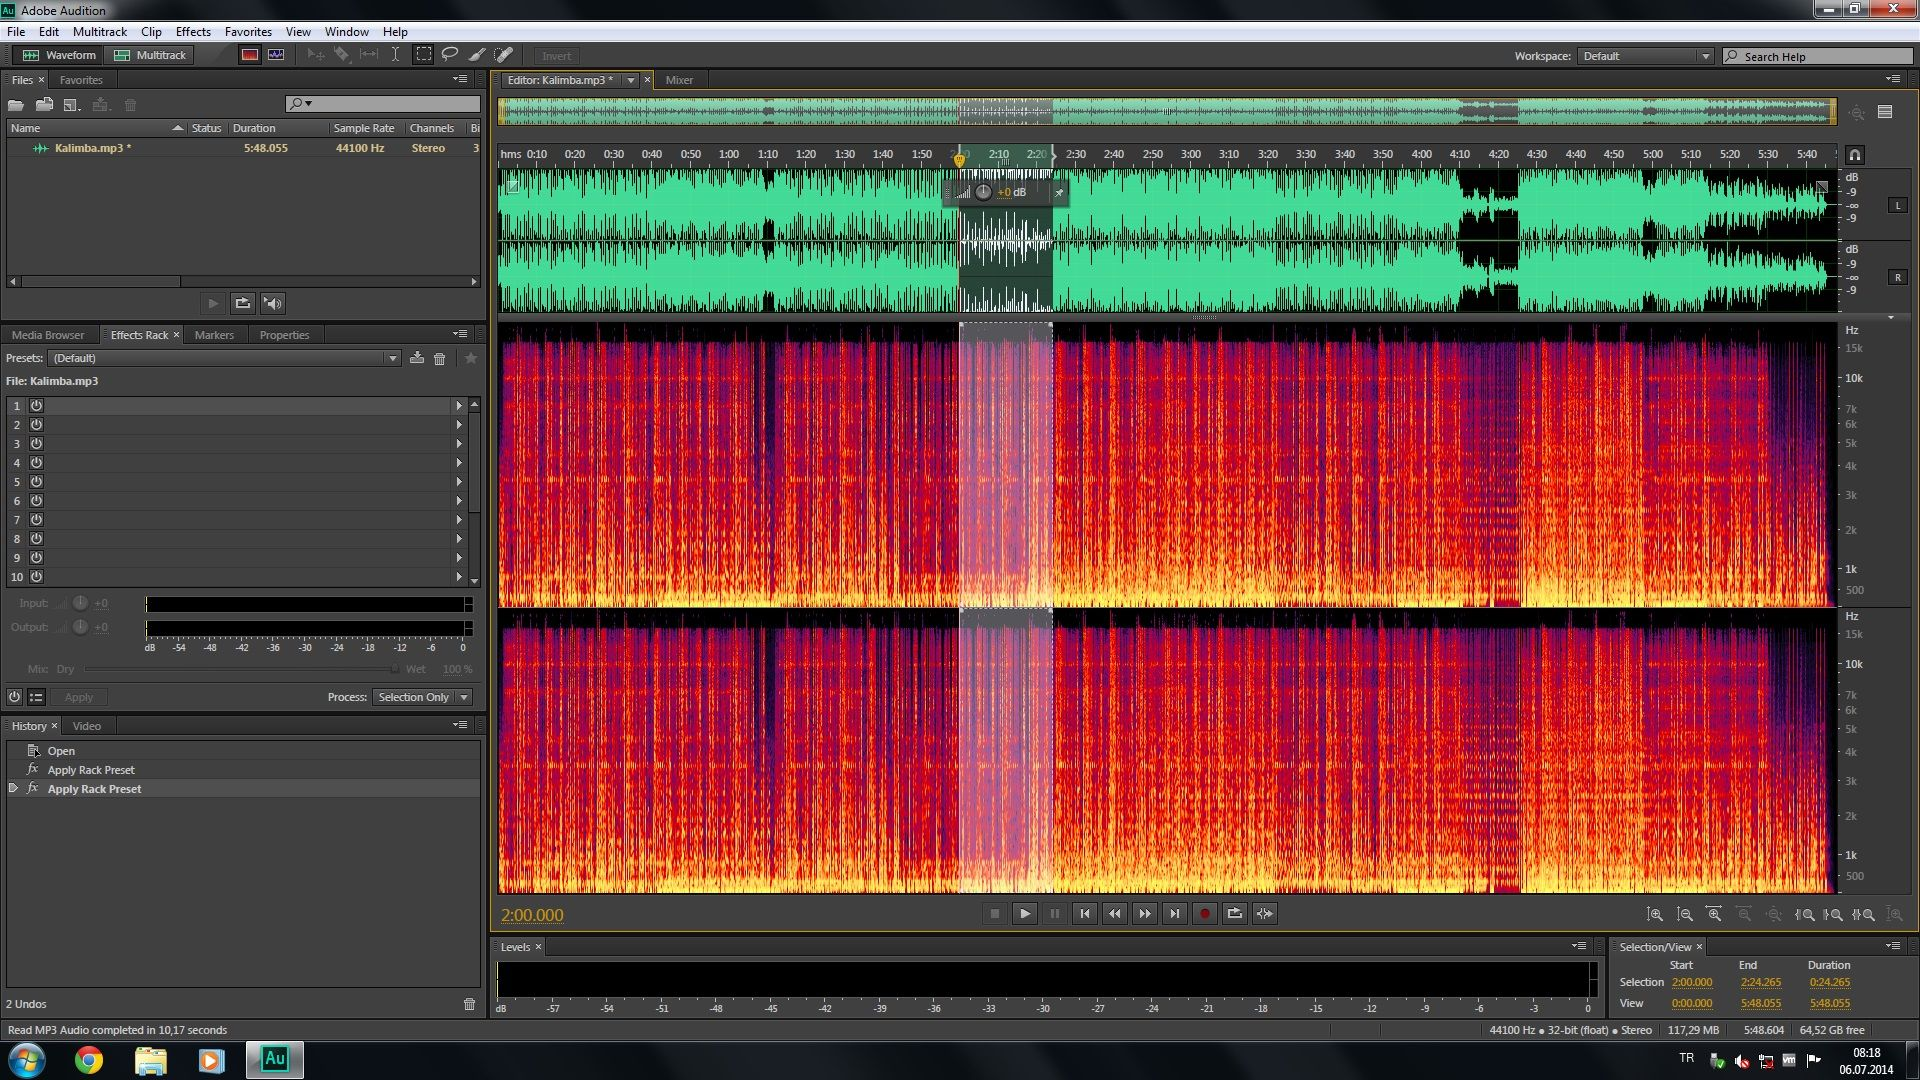 Adobe audition cc 60 full patch